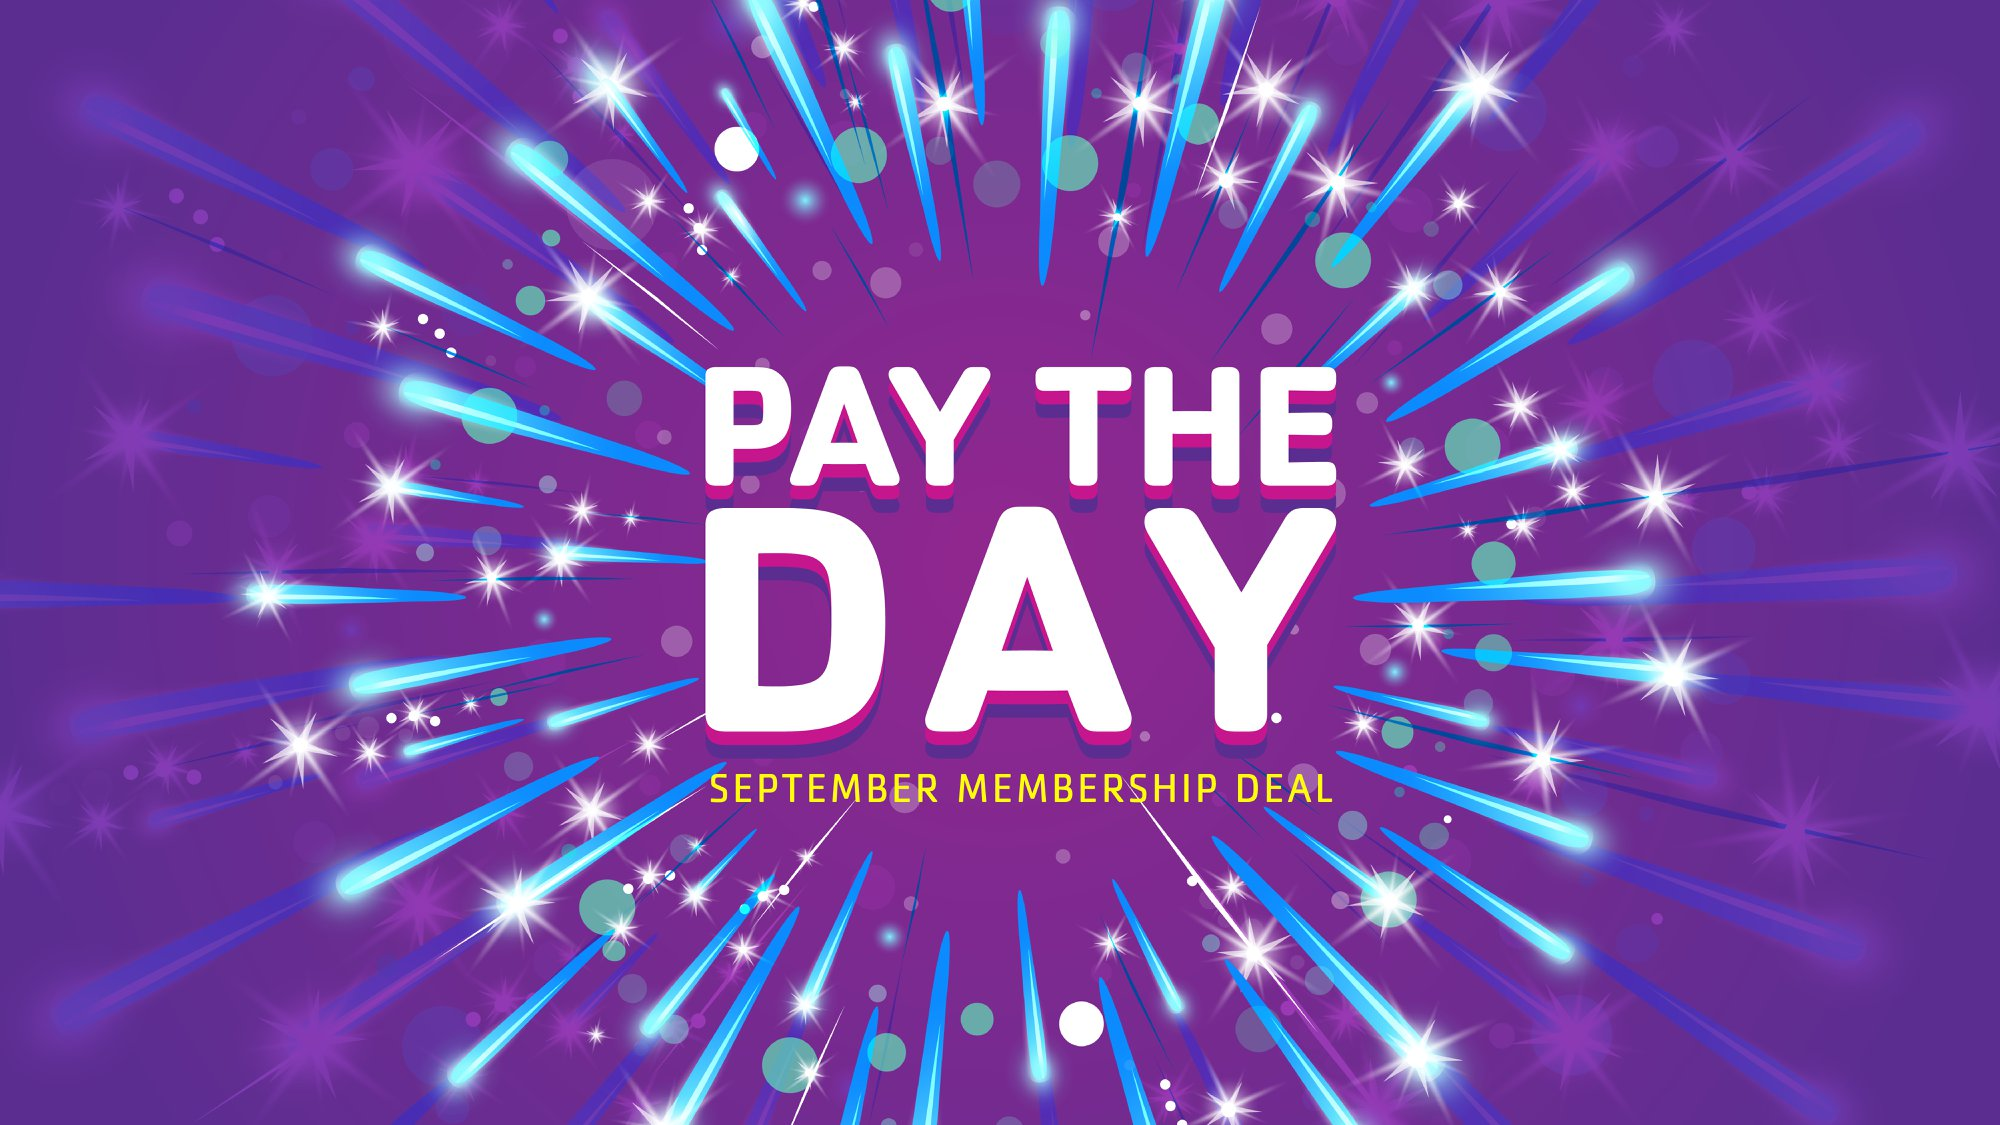 Pay the Day in September